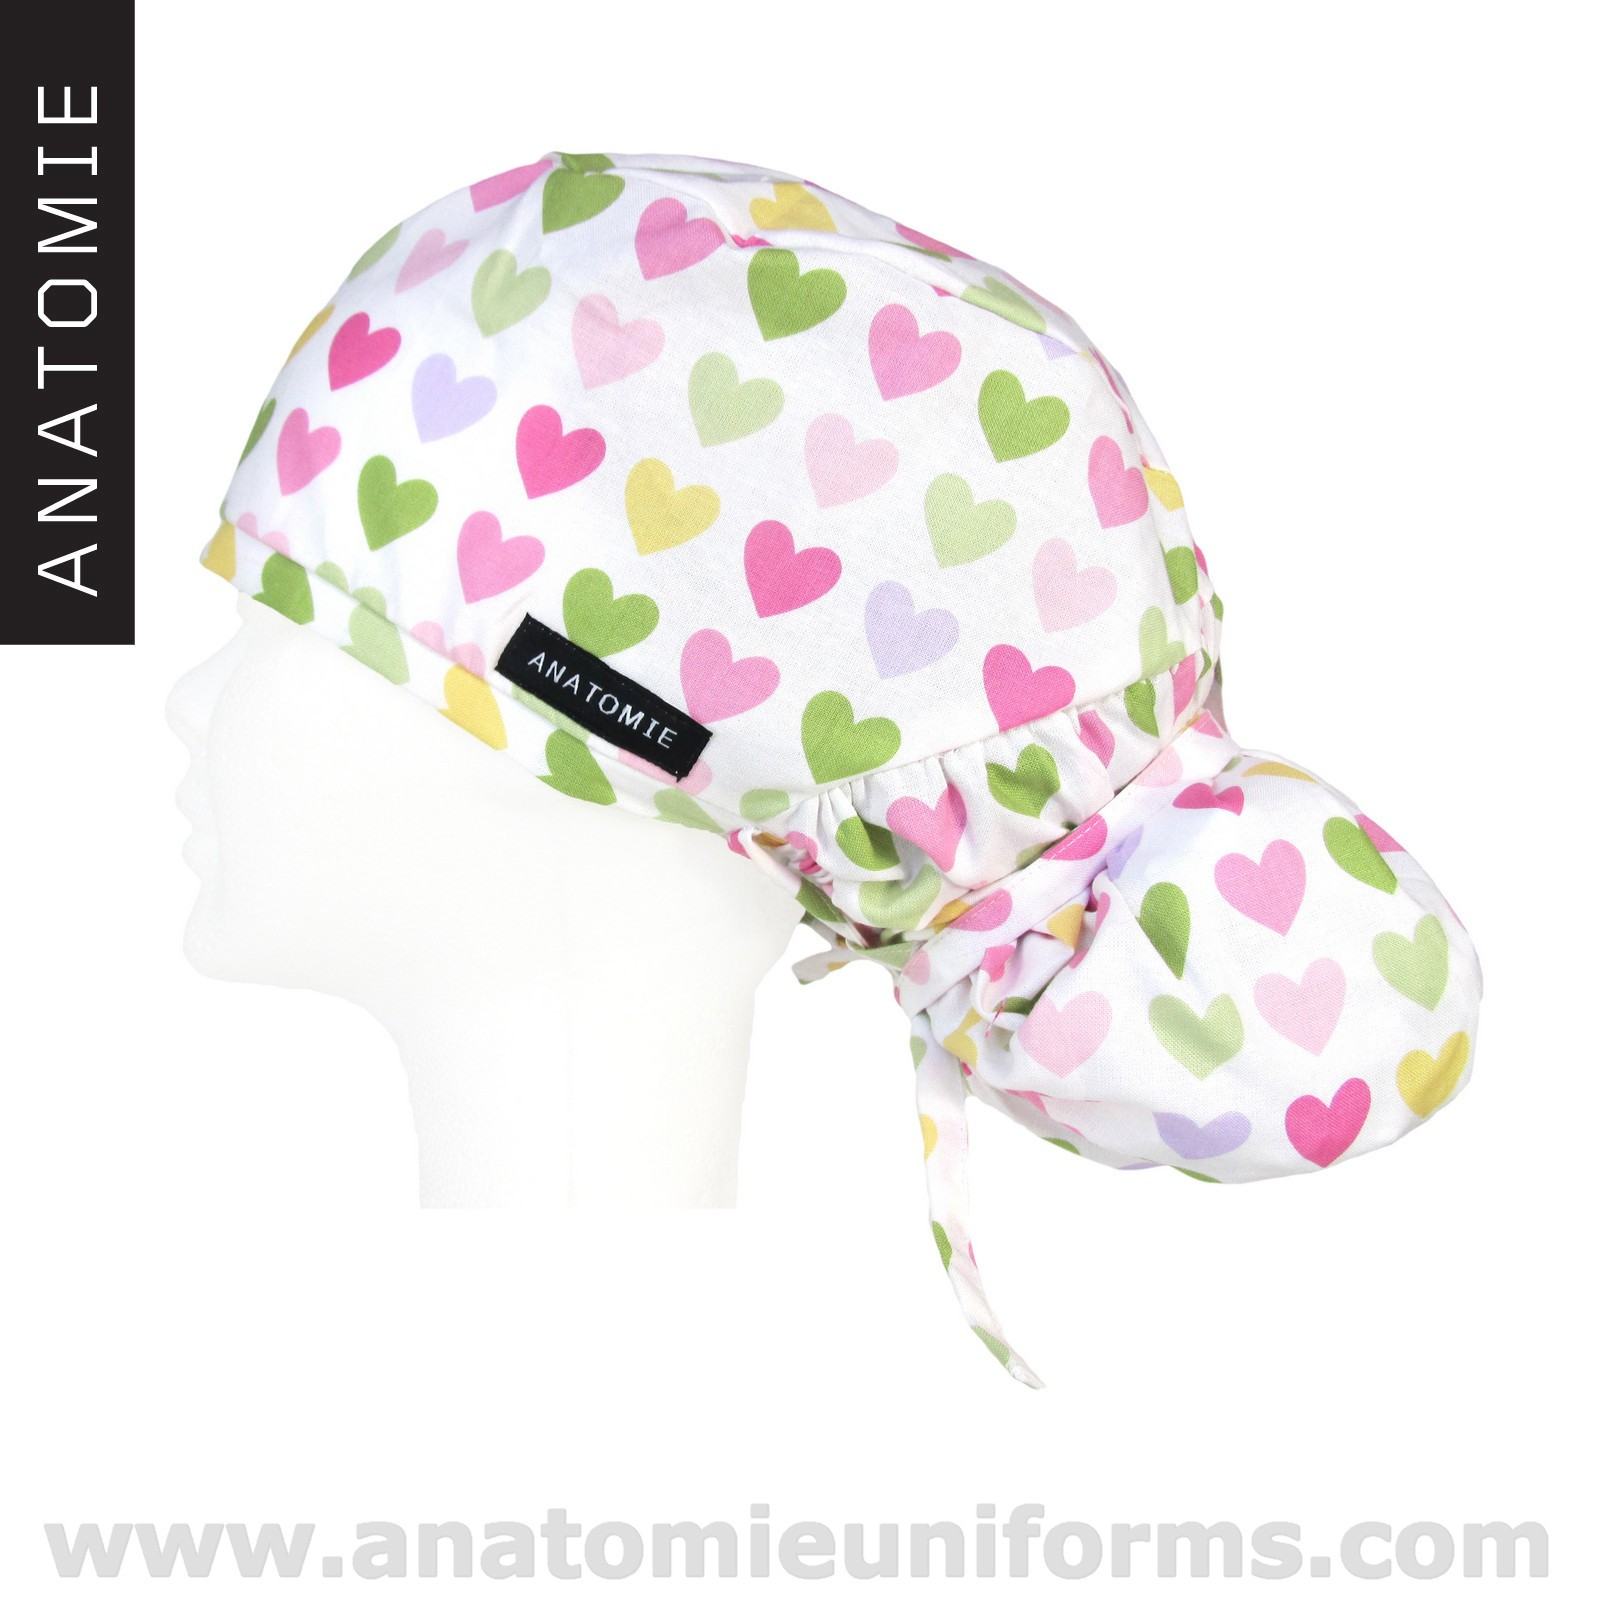 ANATOMIE Surgical Caps female Hearts - ANA1058